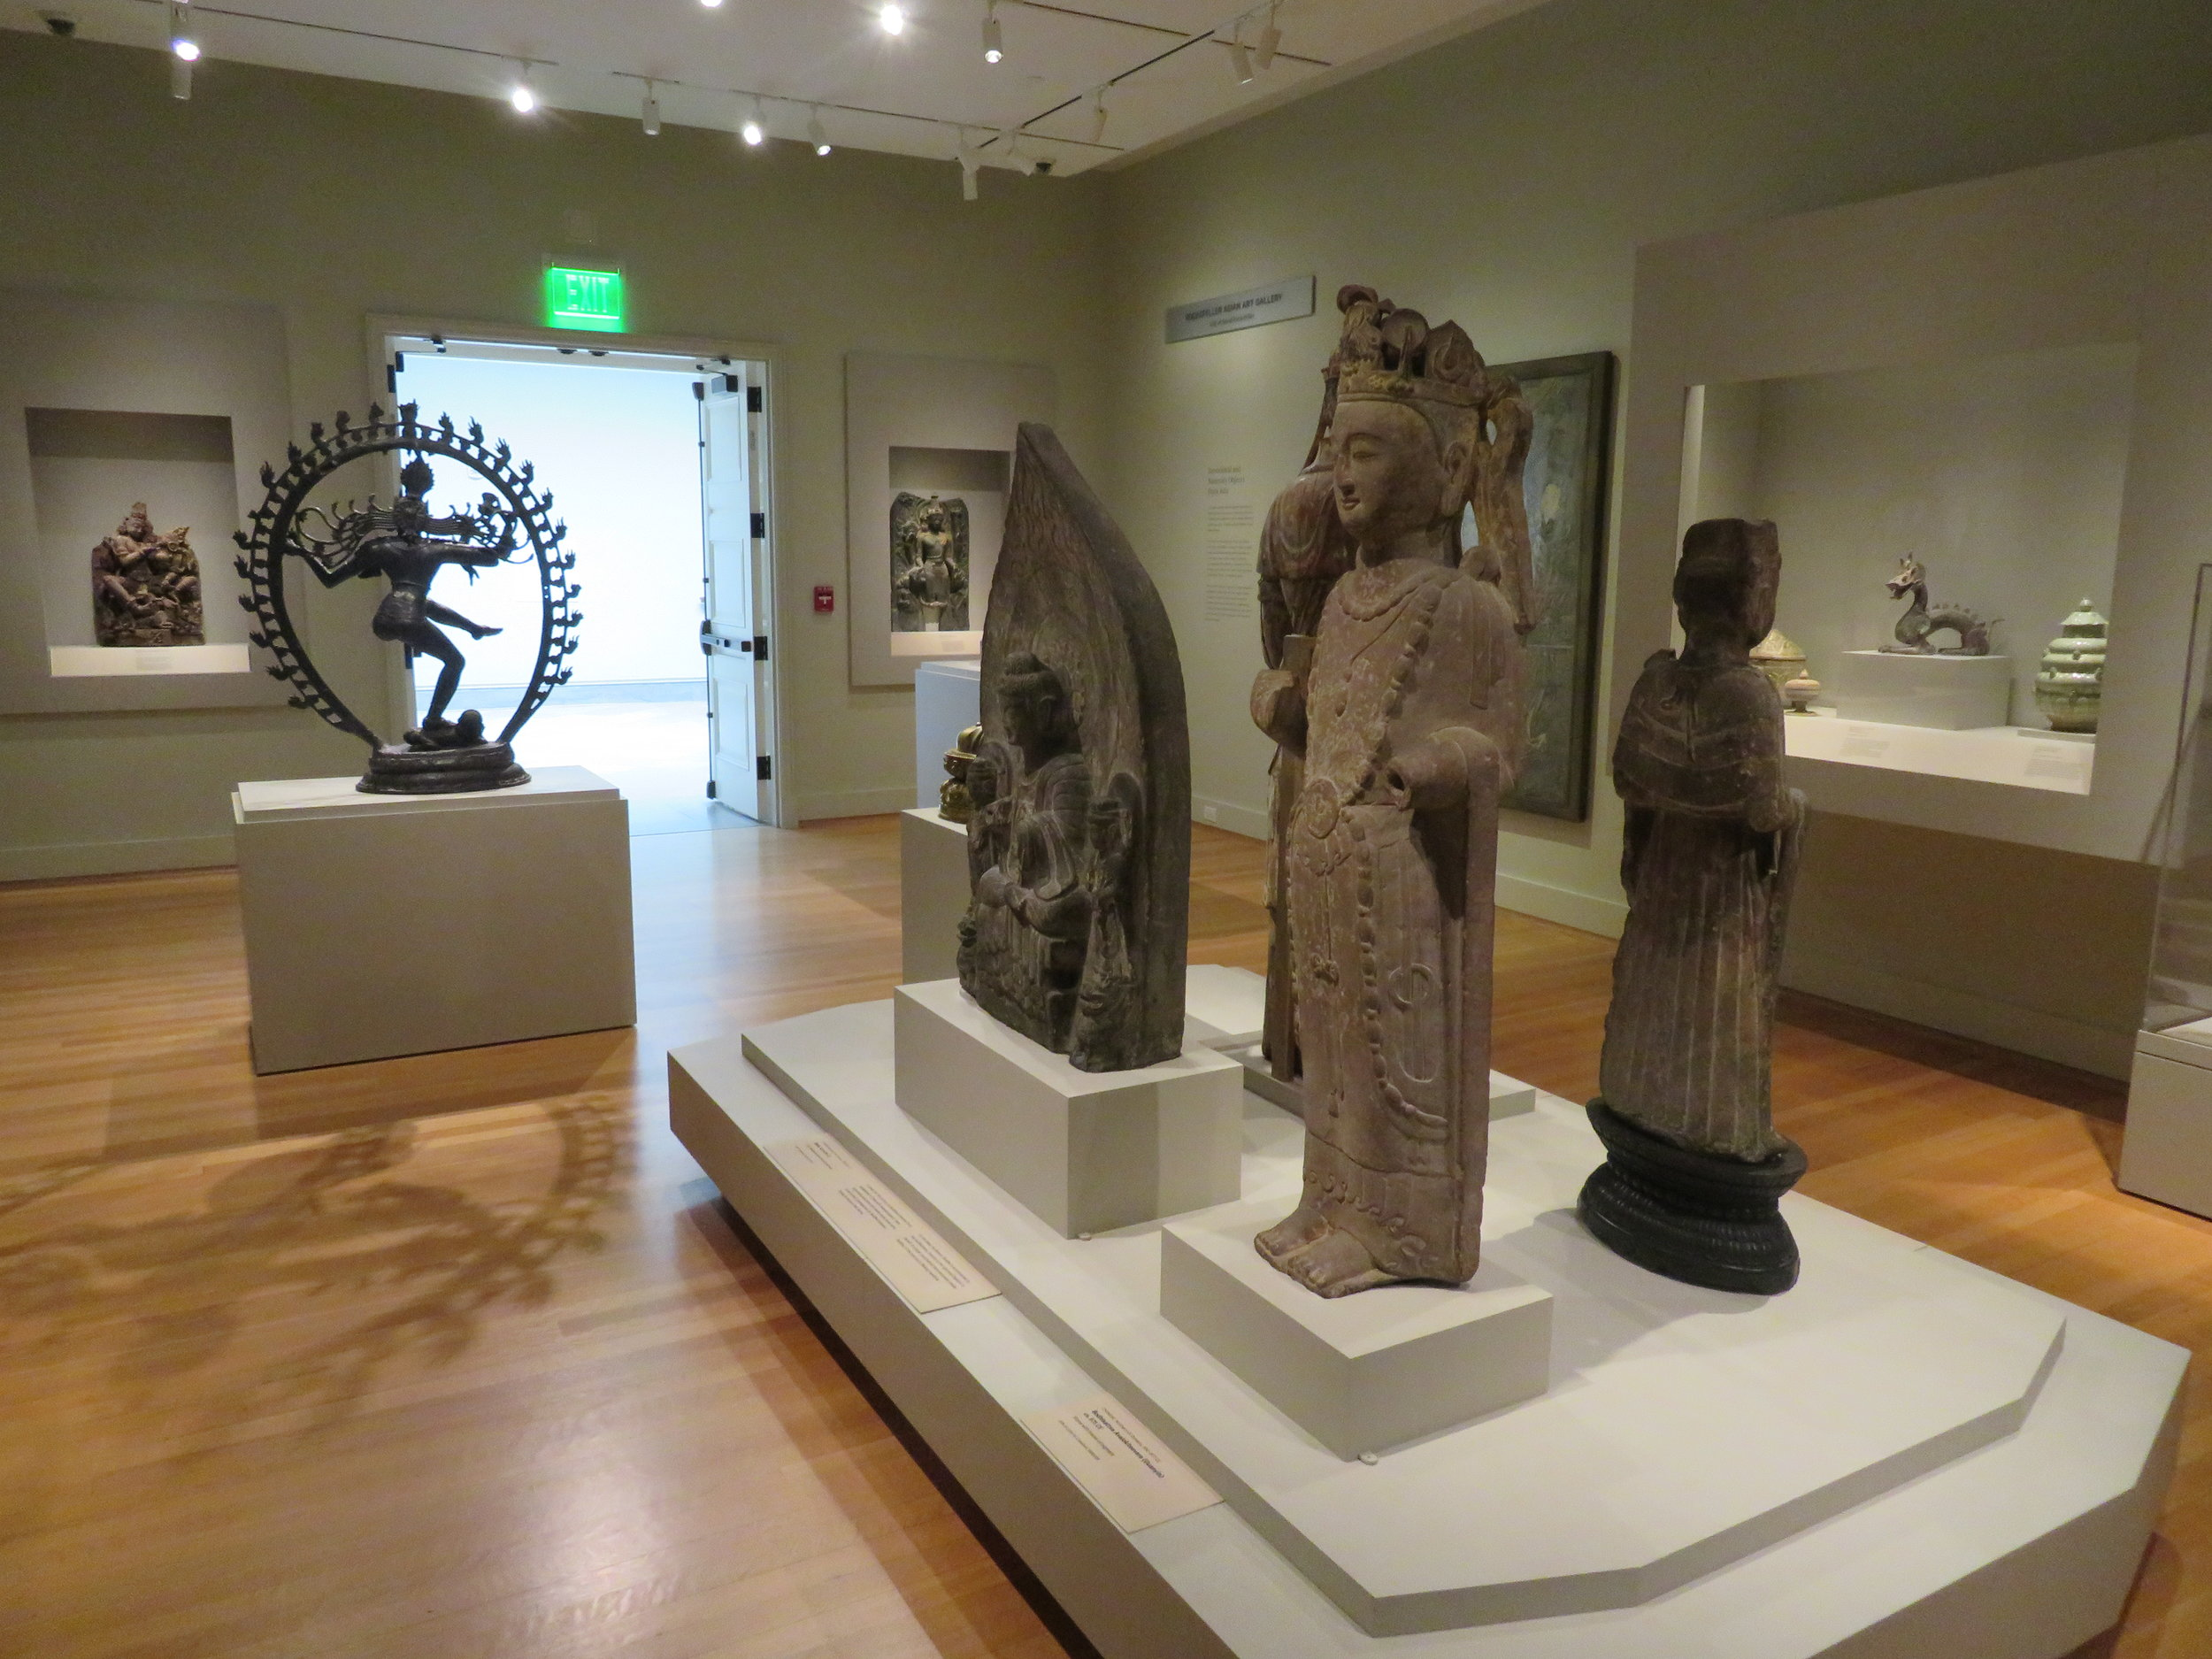 Asian gallery exhibits